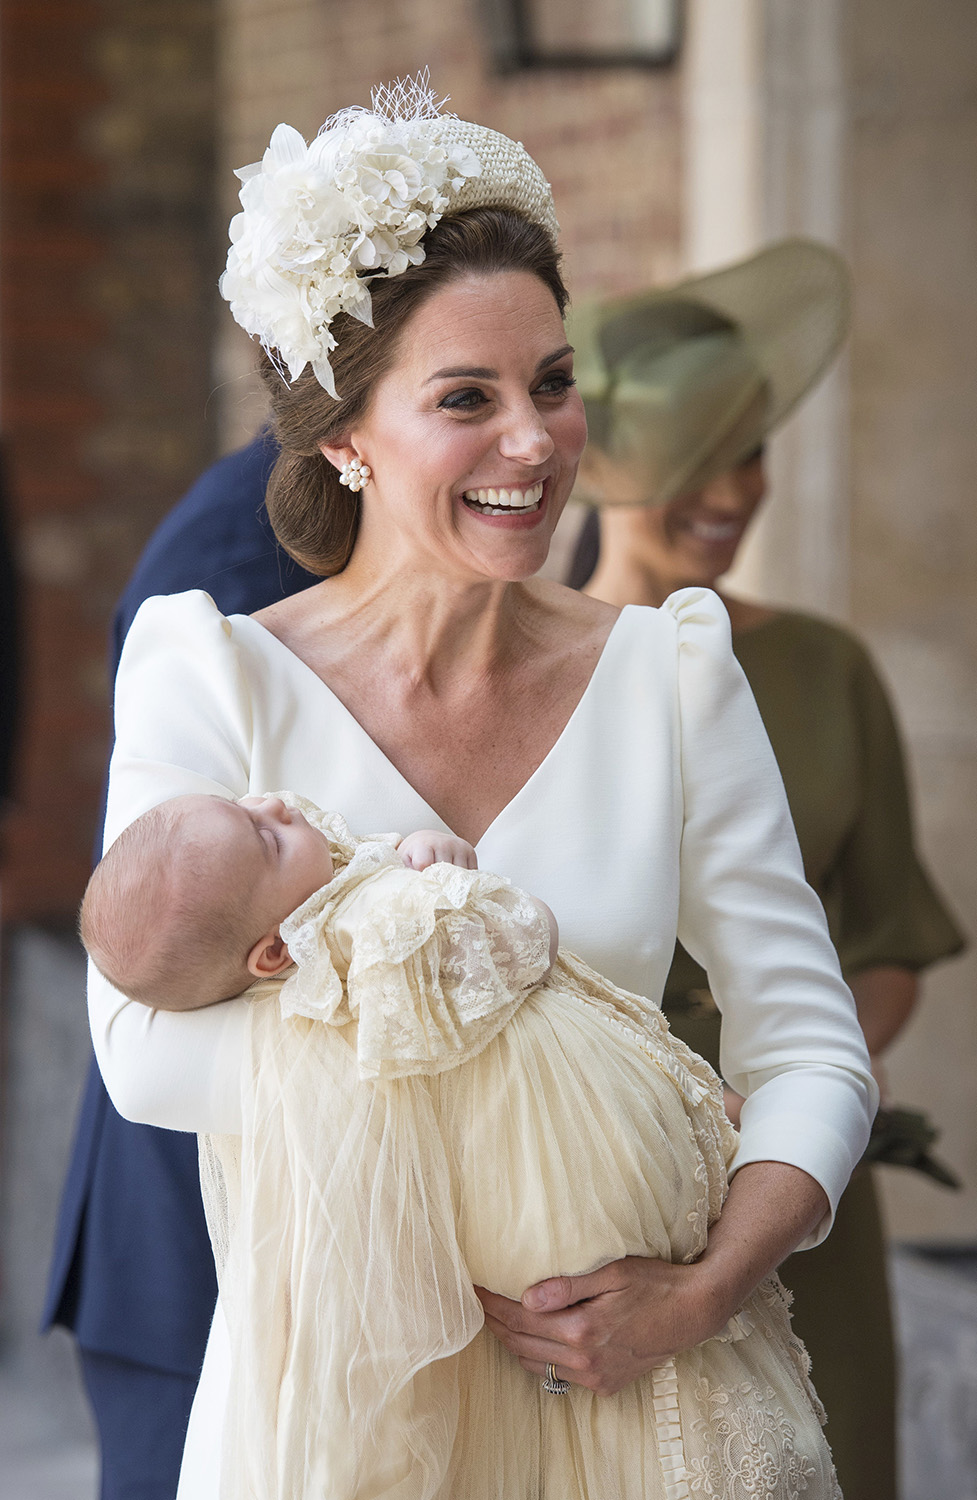 "<div class=""meta image-caption""><div class=""origin-logo origin-image none""><span>none</span></div><span class=""caption-text"">Kate, Duchess of Cambridge carries Prince Louis as they arrive for his christening service at the Chapel Royal, St James's Palace, London, Monday, July 9, 2018. (Dominic Lipinski/Pool Photo via AP)</span></div>"